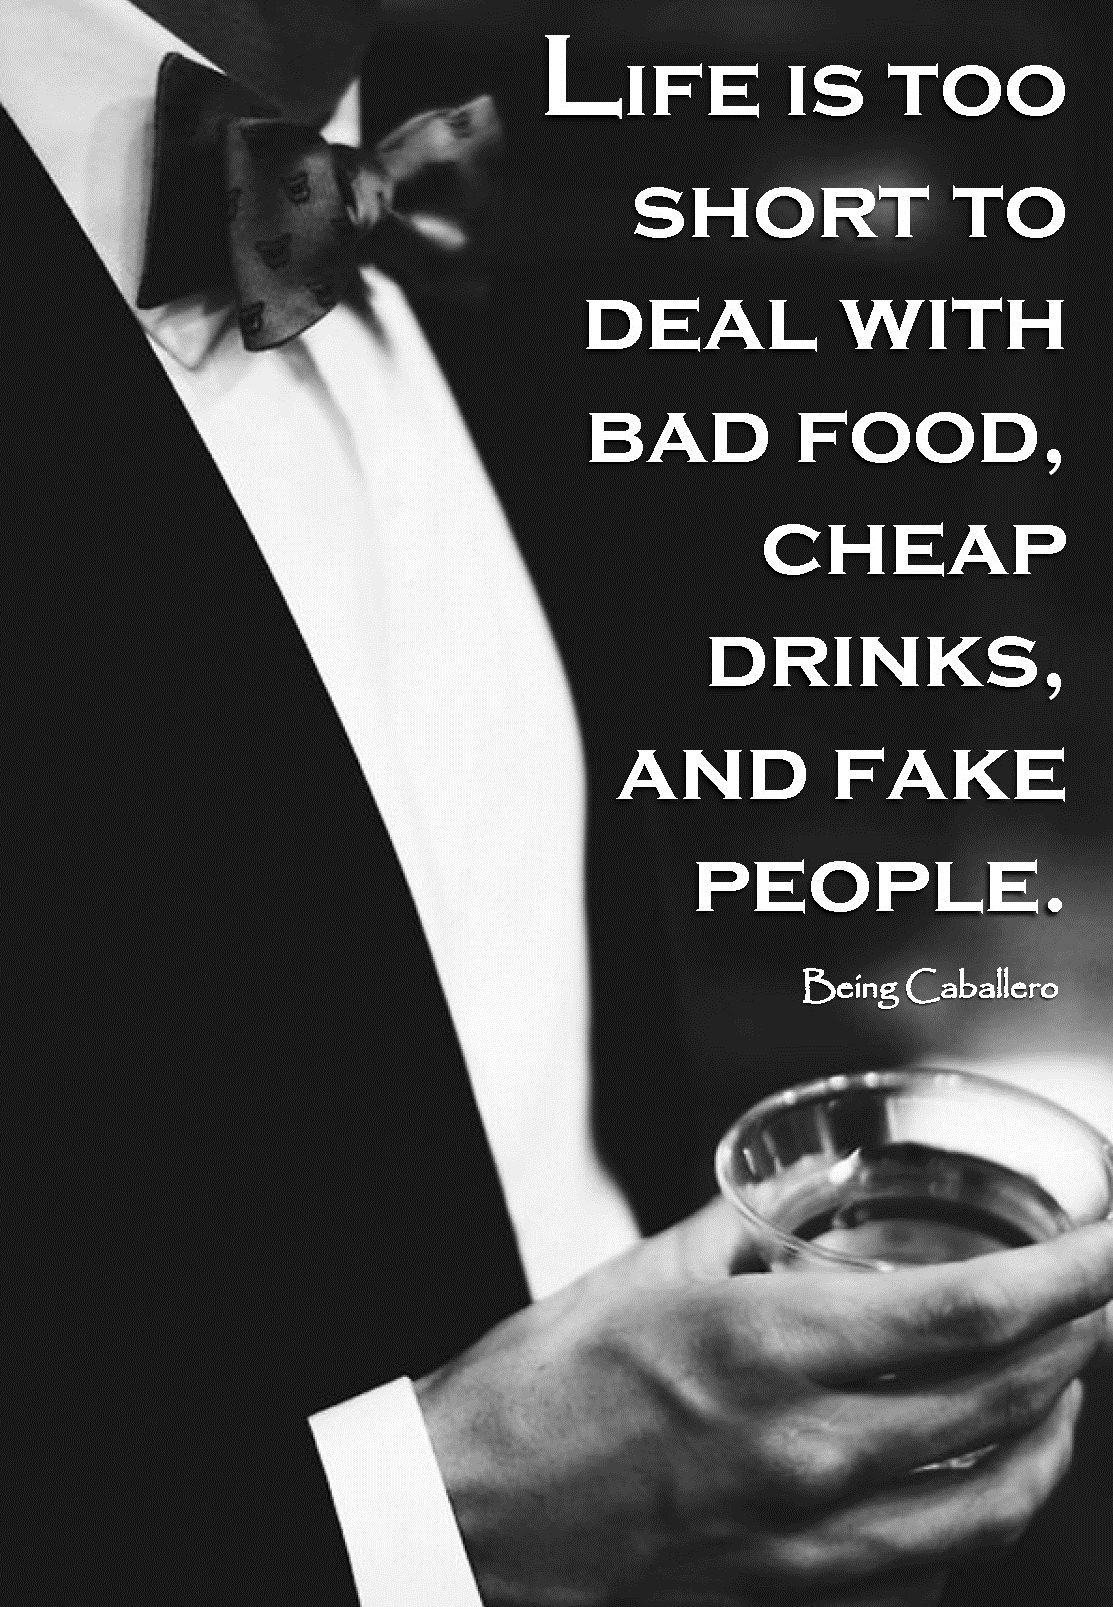 quotes cheap fake bad short quote too being gentleman food deal motivational drinks dealing caballero phony funny sayings qoutes drinking